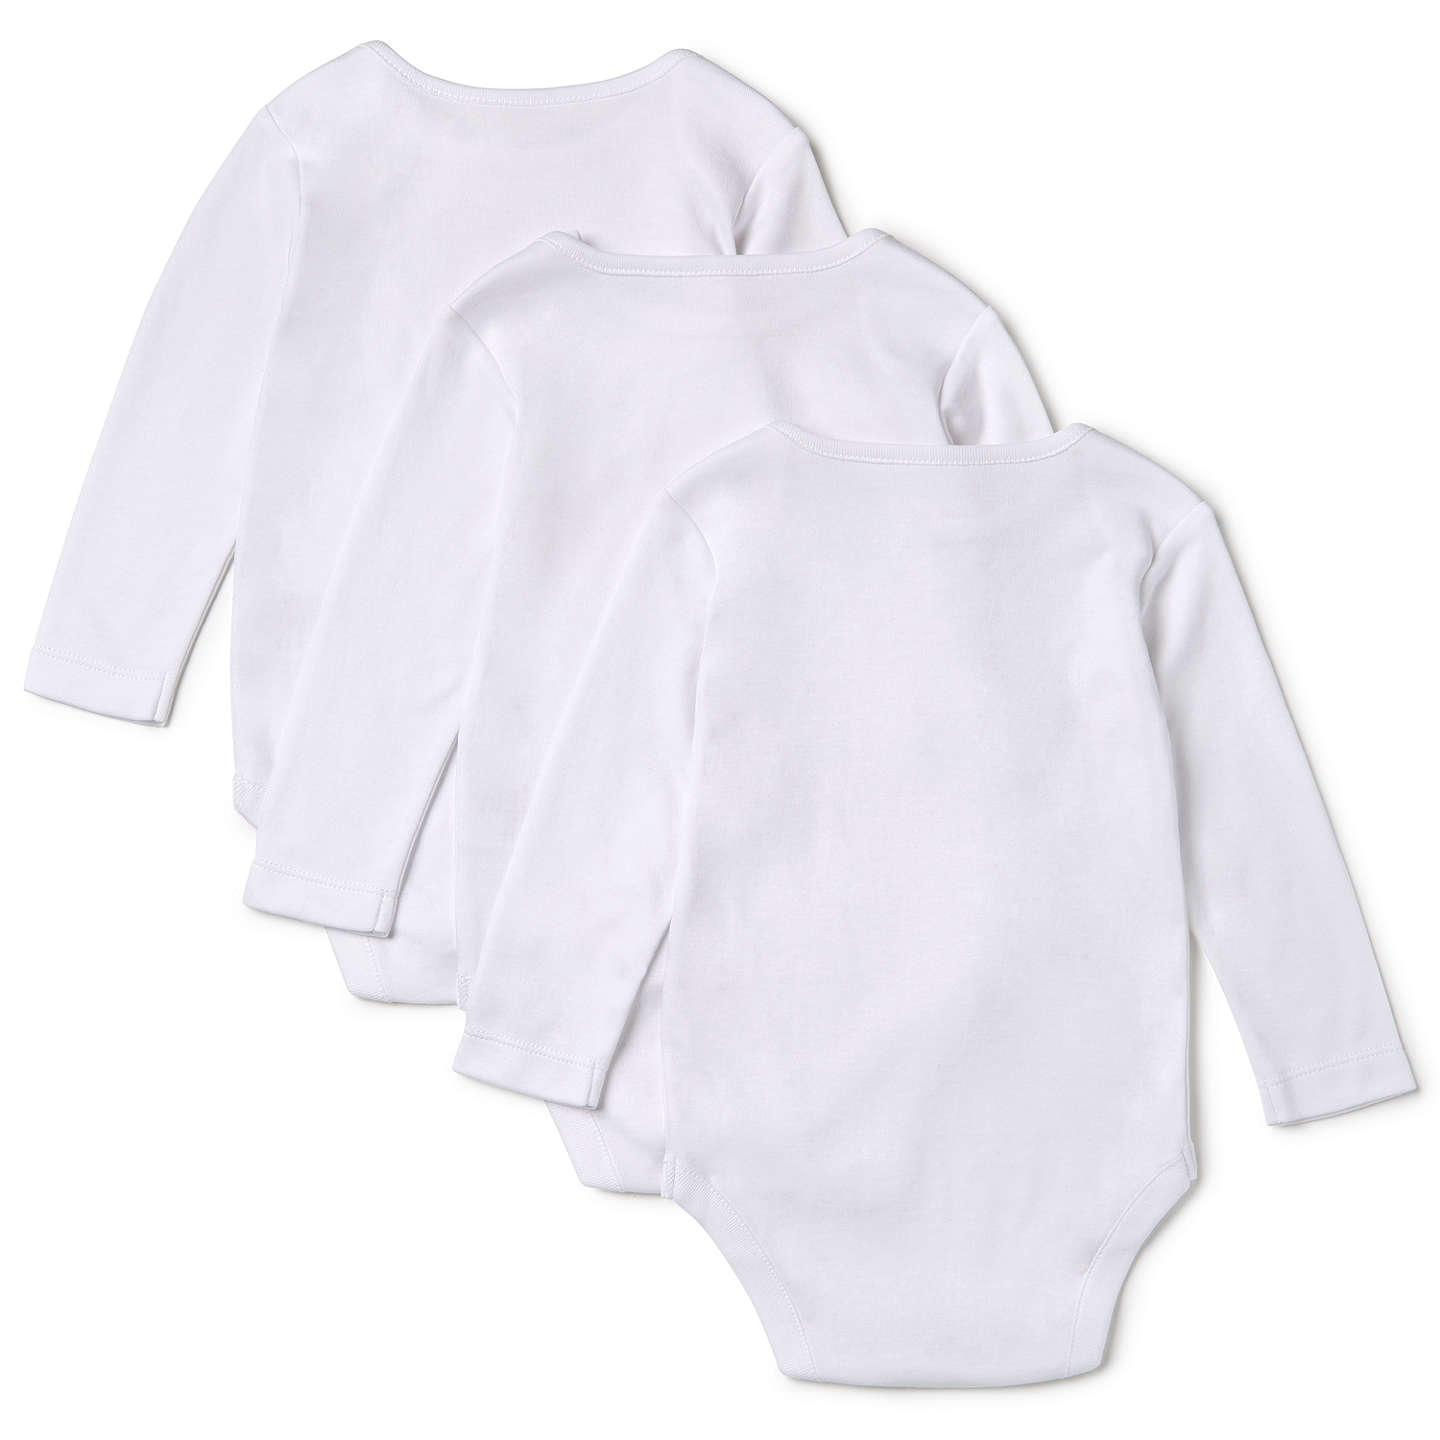 John Lewis Baby Pima Cotton Long Sleeve Bodysuit Pack of 3 White